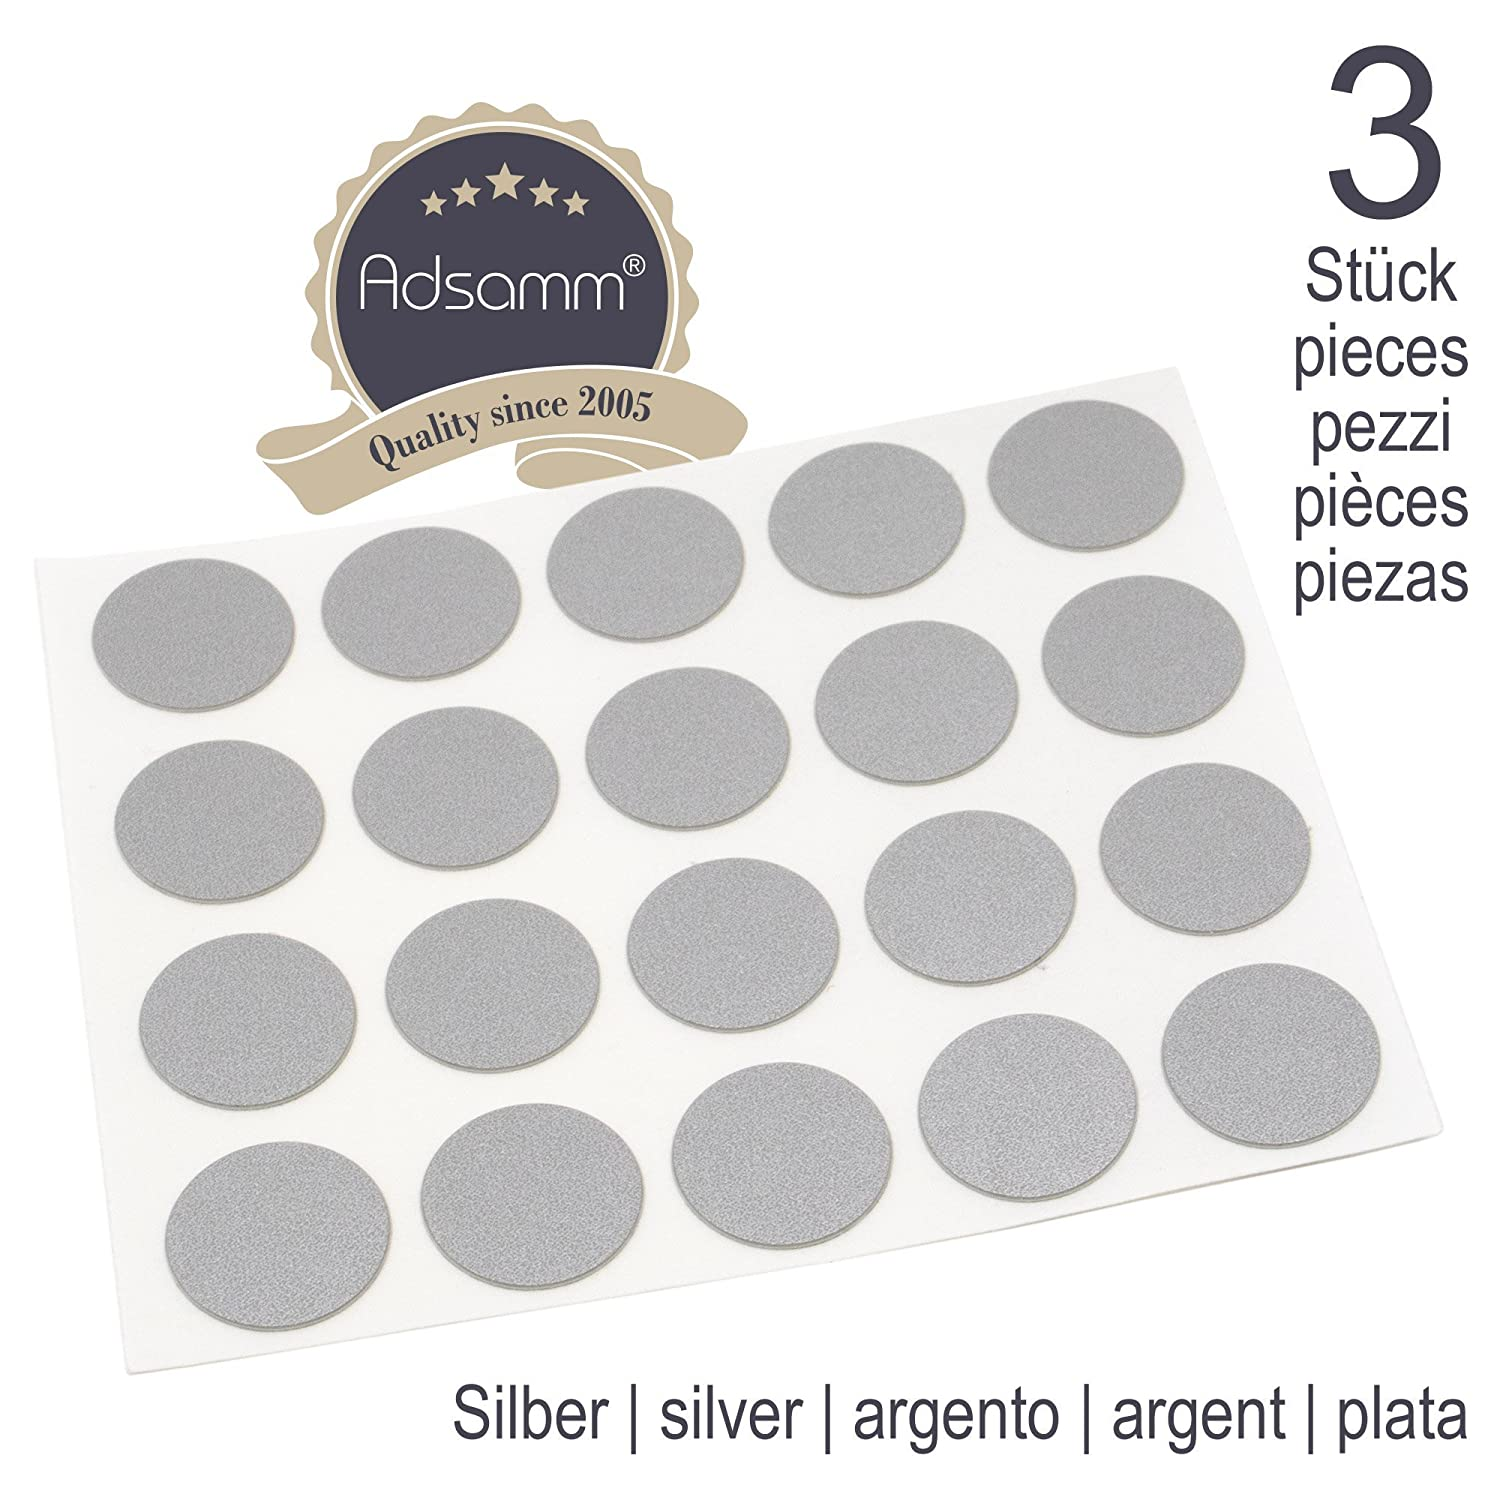 Adsamm 60 x Cover caps | Ø 0.51'' (Ø 1,3 cm) | Silver | Round | 0.018'' (0,45 mm) Thin, self-Adhesive Furniture Patches 3 cm) | Silver | Round | 0.018'' (0